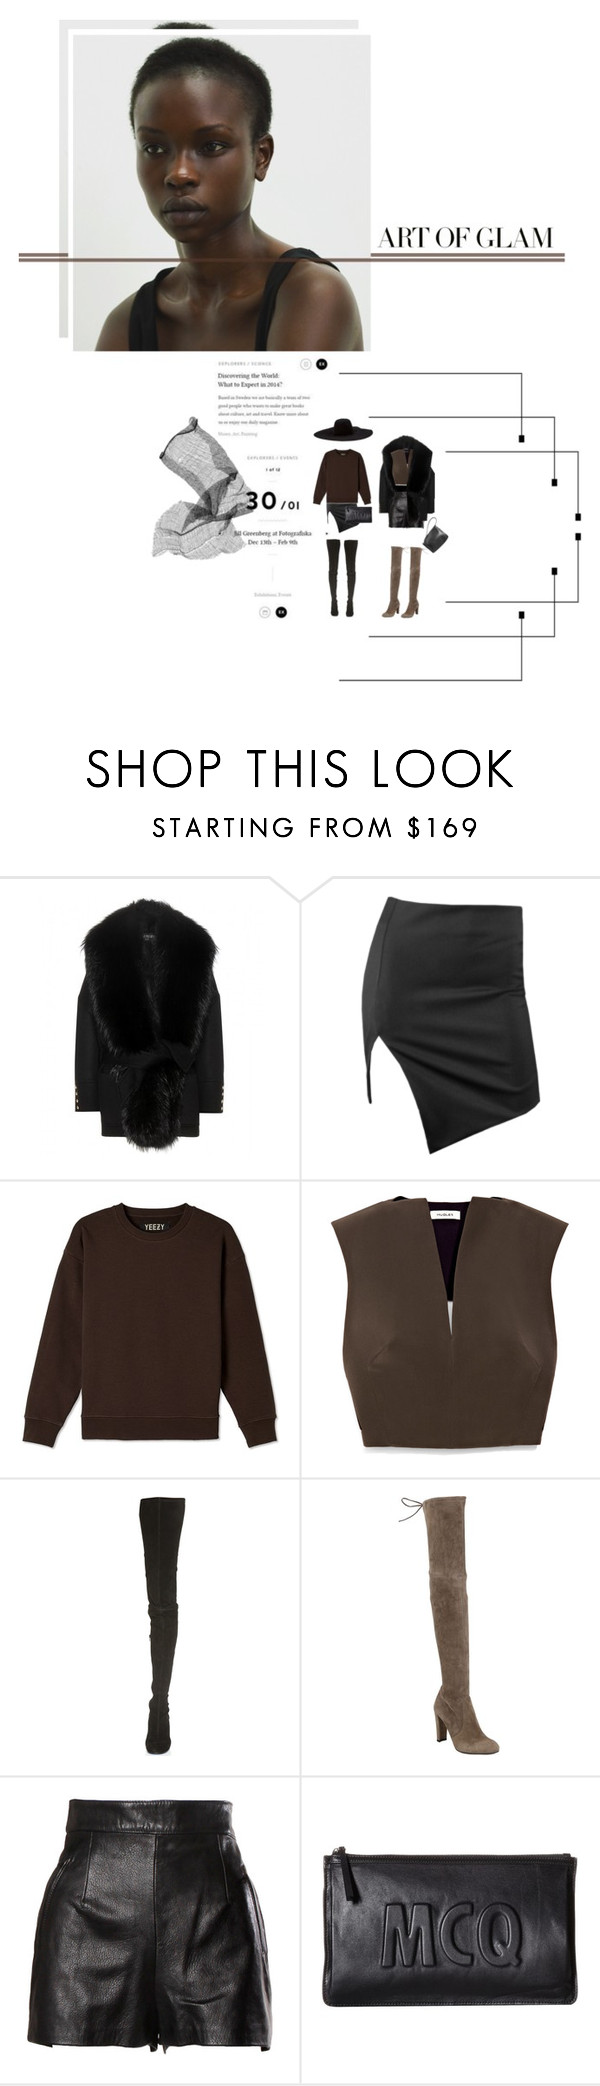 """""""[art of g l a m]"""" by furhious ❤ liked on Polyvore featuring Balmain, Bec & Bridge, Thierry Mugler, Maison Margiela, Stuart Weitzman, Moschino, Lanvin, McQ by Alexander McQueen and Rick Owens"""